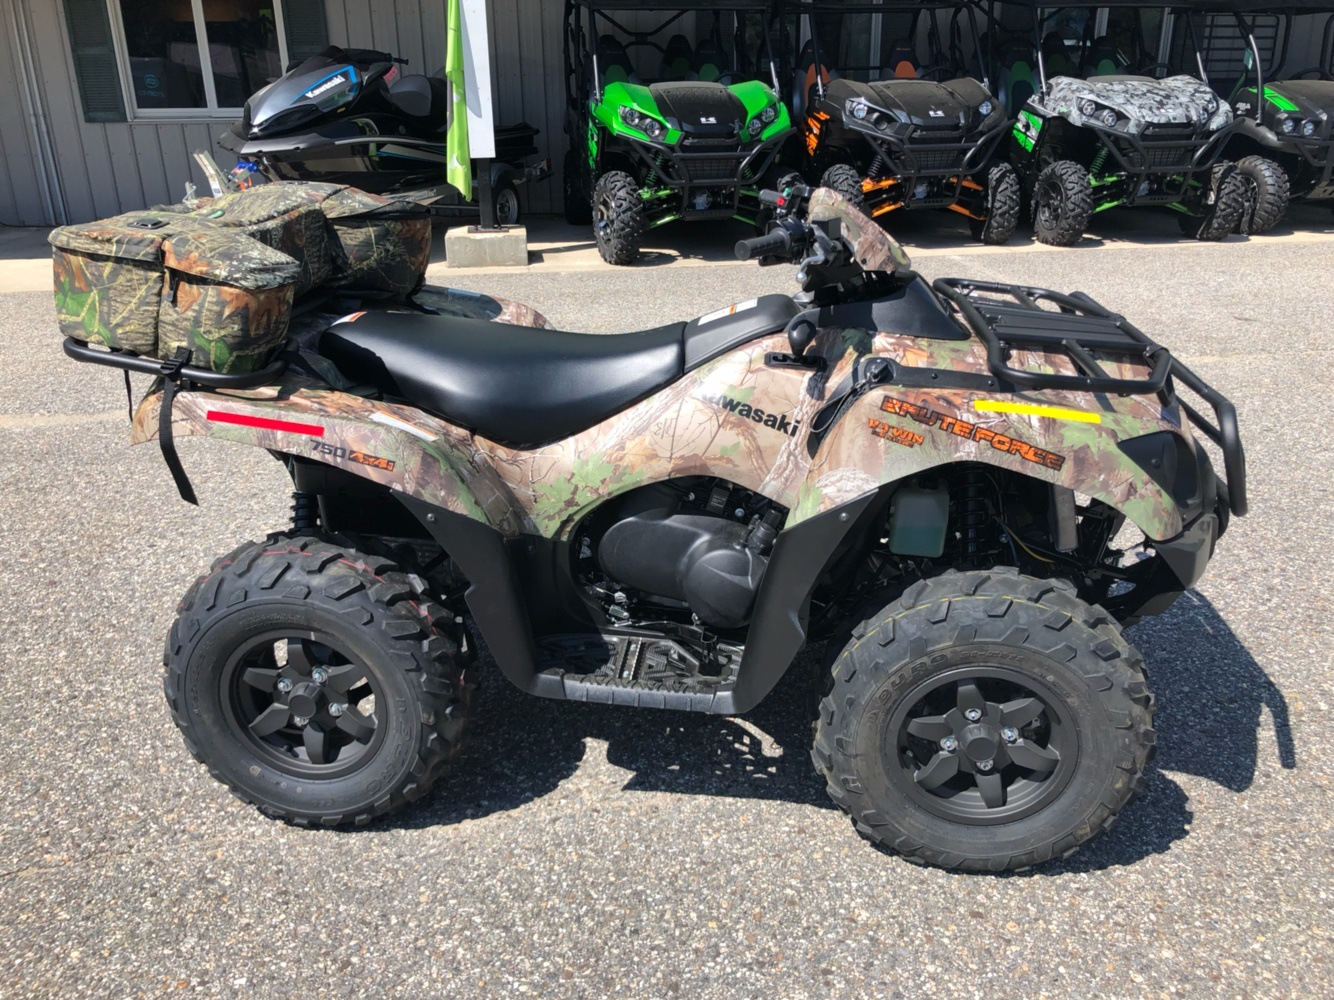 2019 Kawasaki Brute Force 750 4x4i EPS Camo in Lebanon, Maine - Photo 7